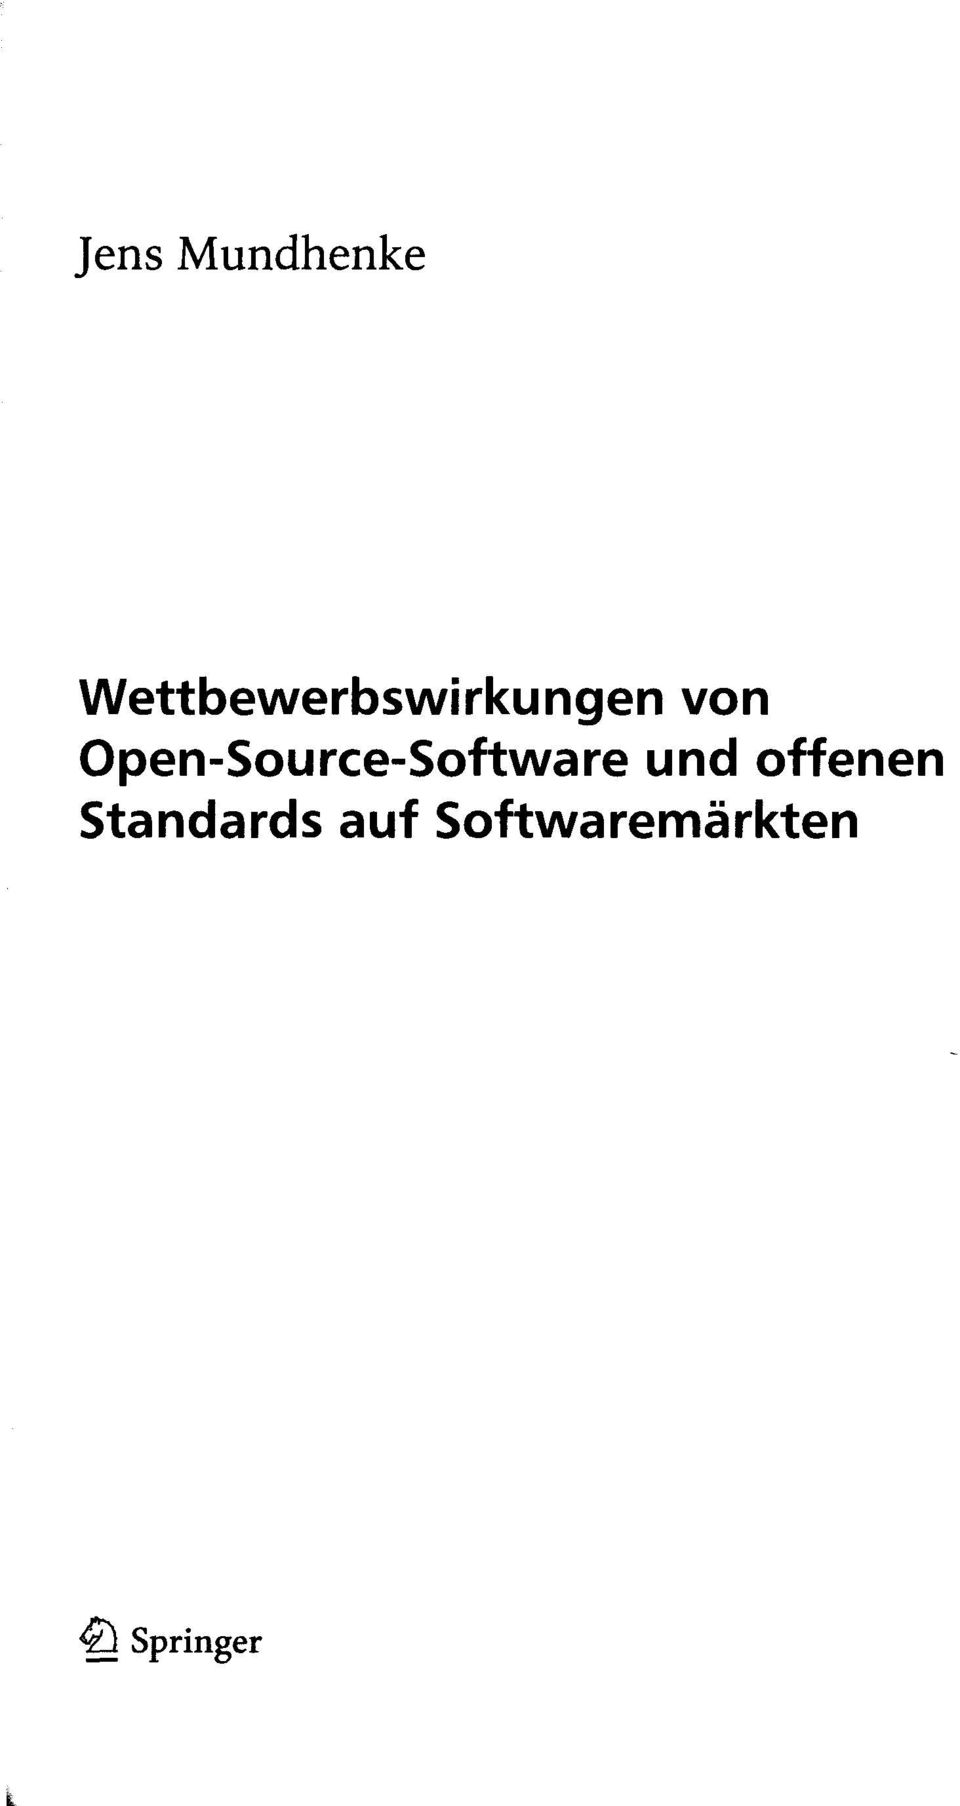 Open-Source-Software und